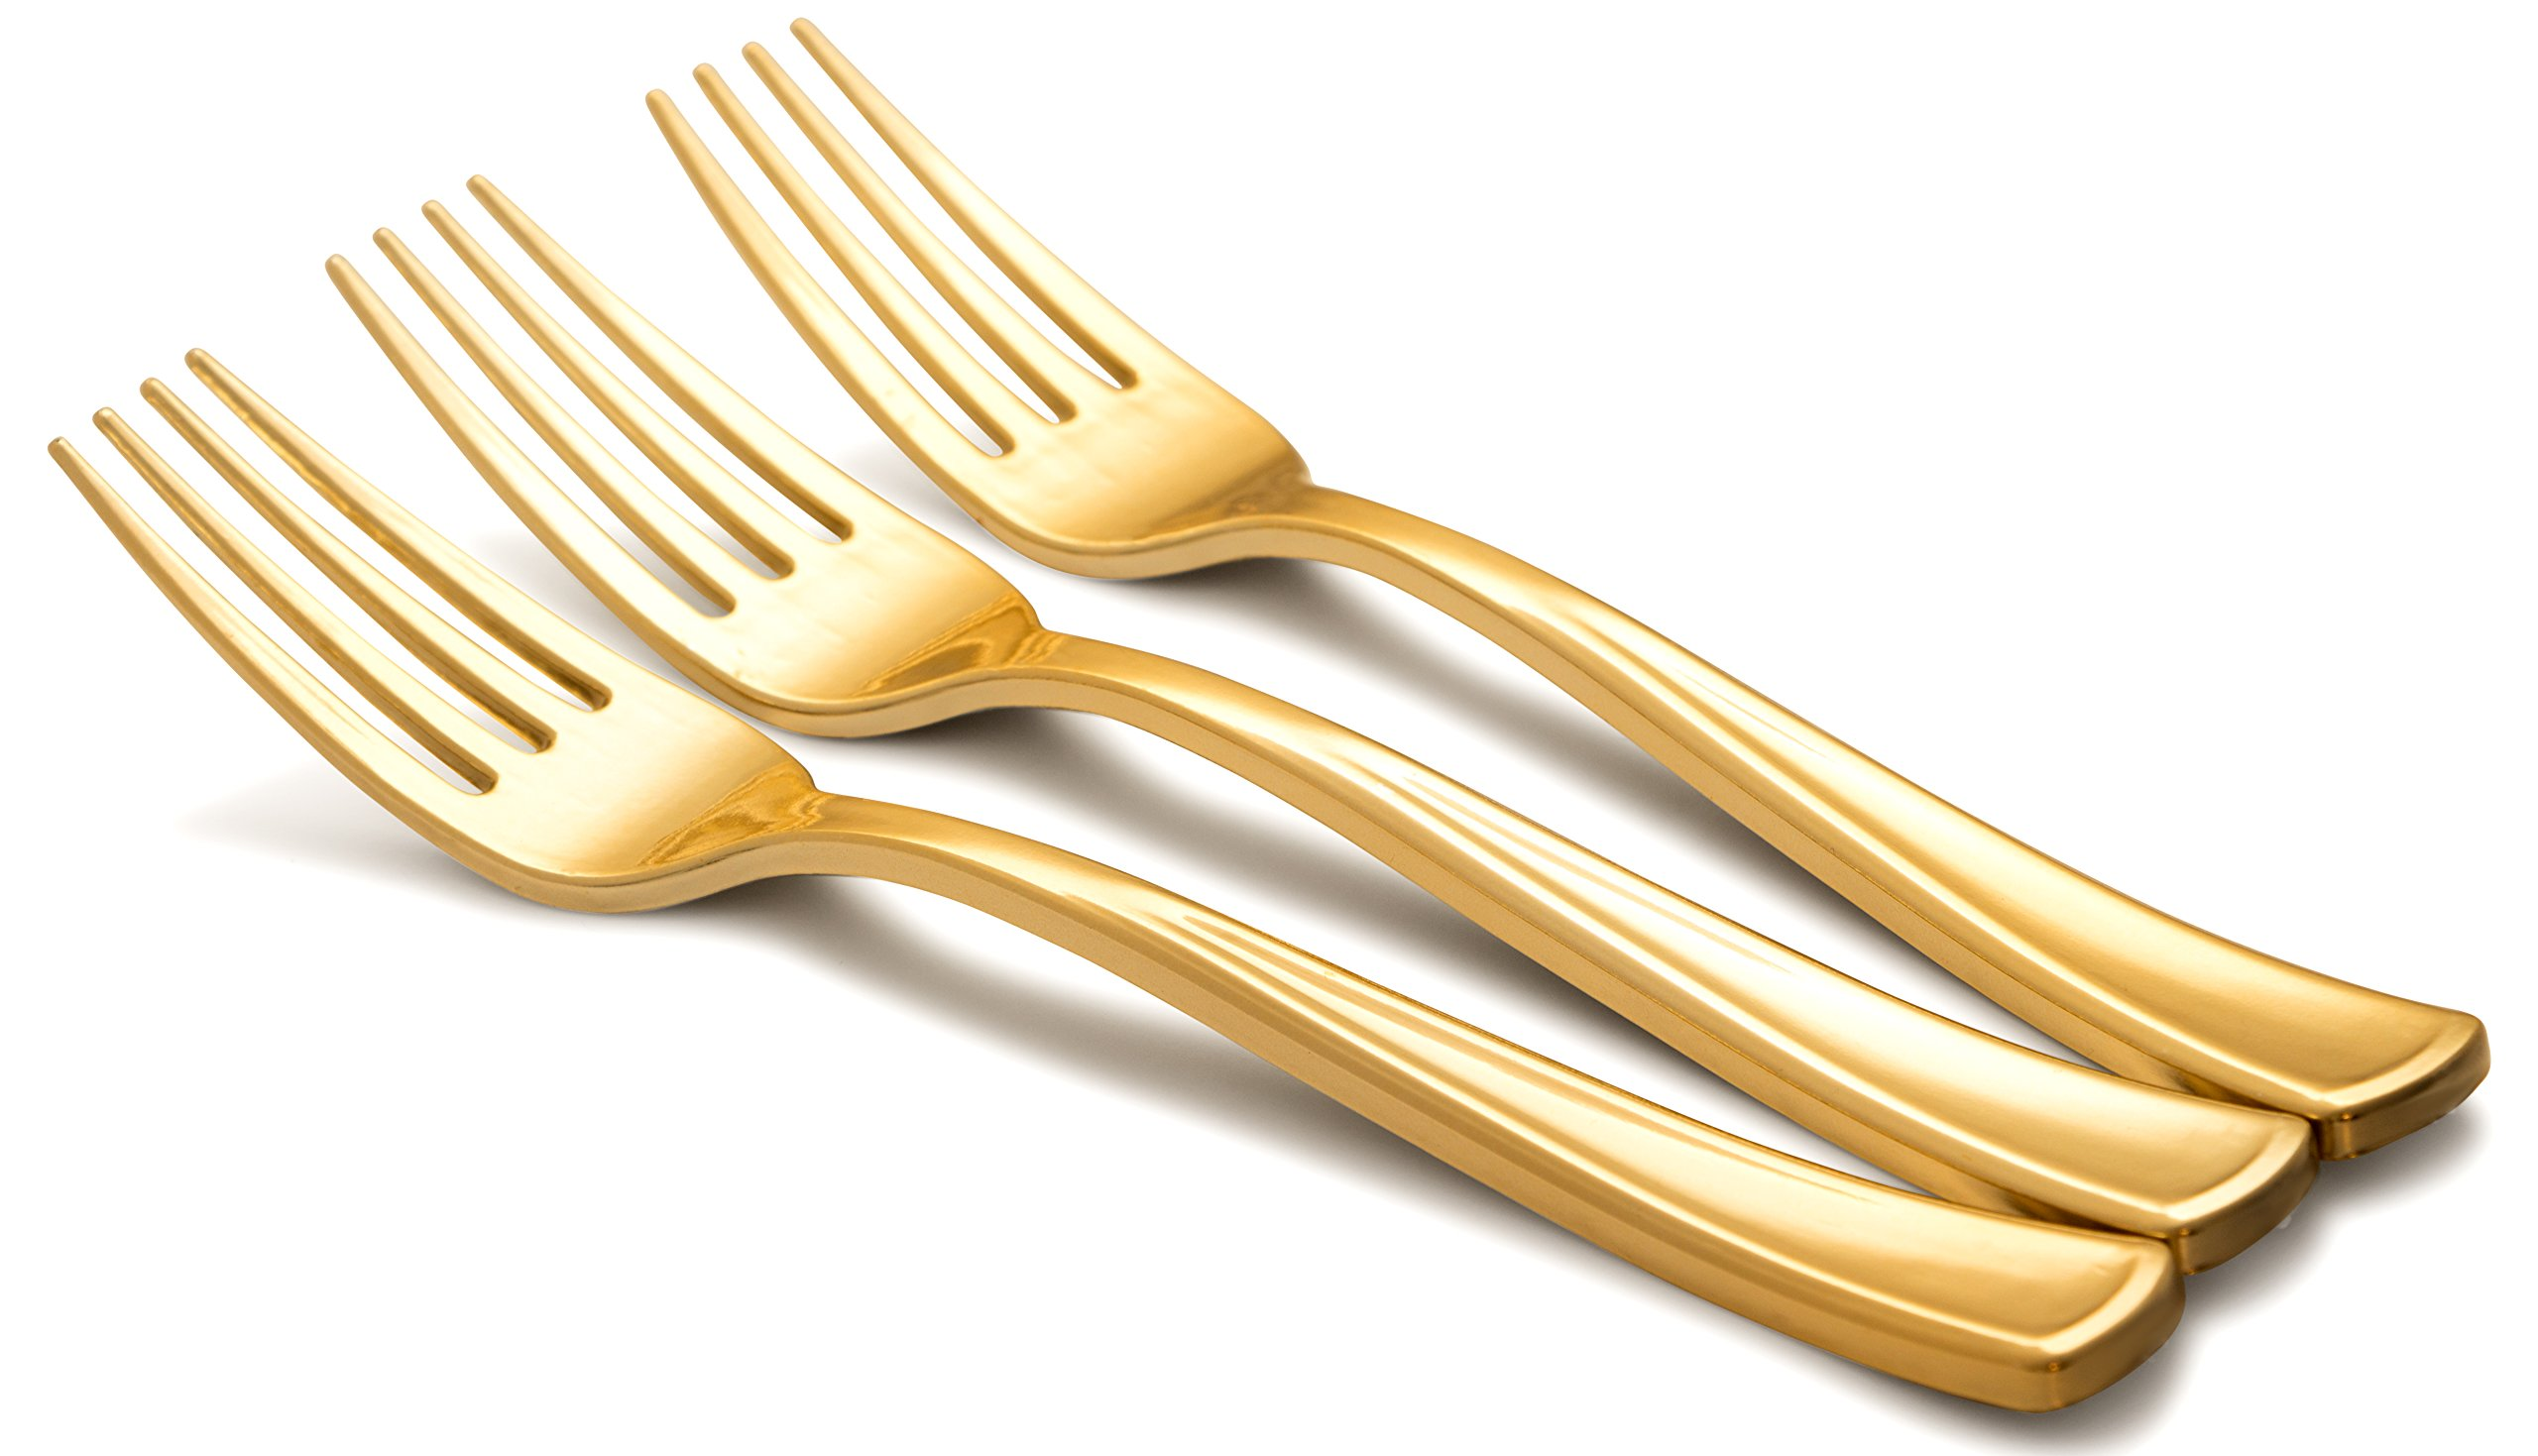 Kaya Collection - Disposable Plastic Gold Silverware Cutlery, Shiny Metallic Flatware - 1 Case (288 Forks)